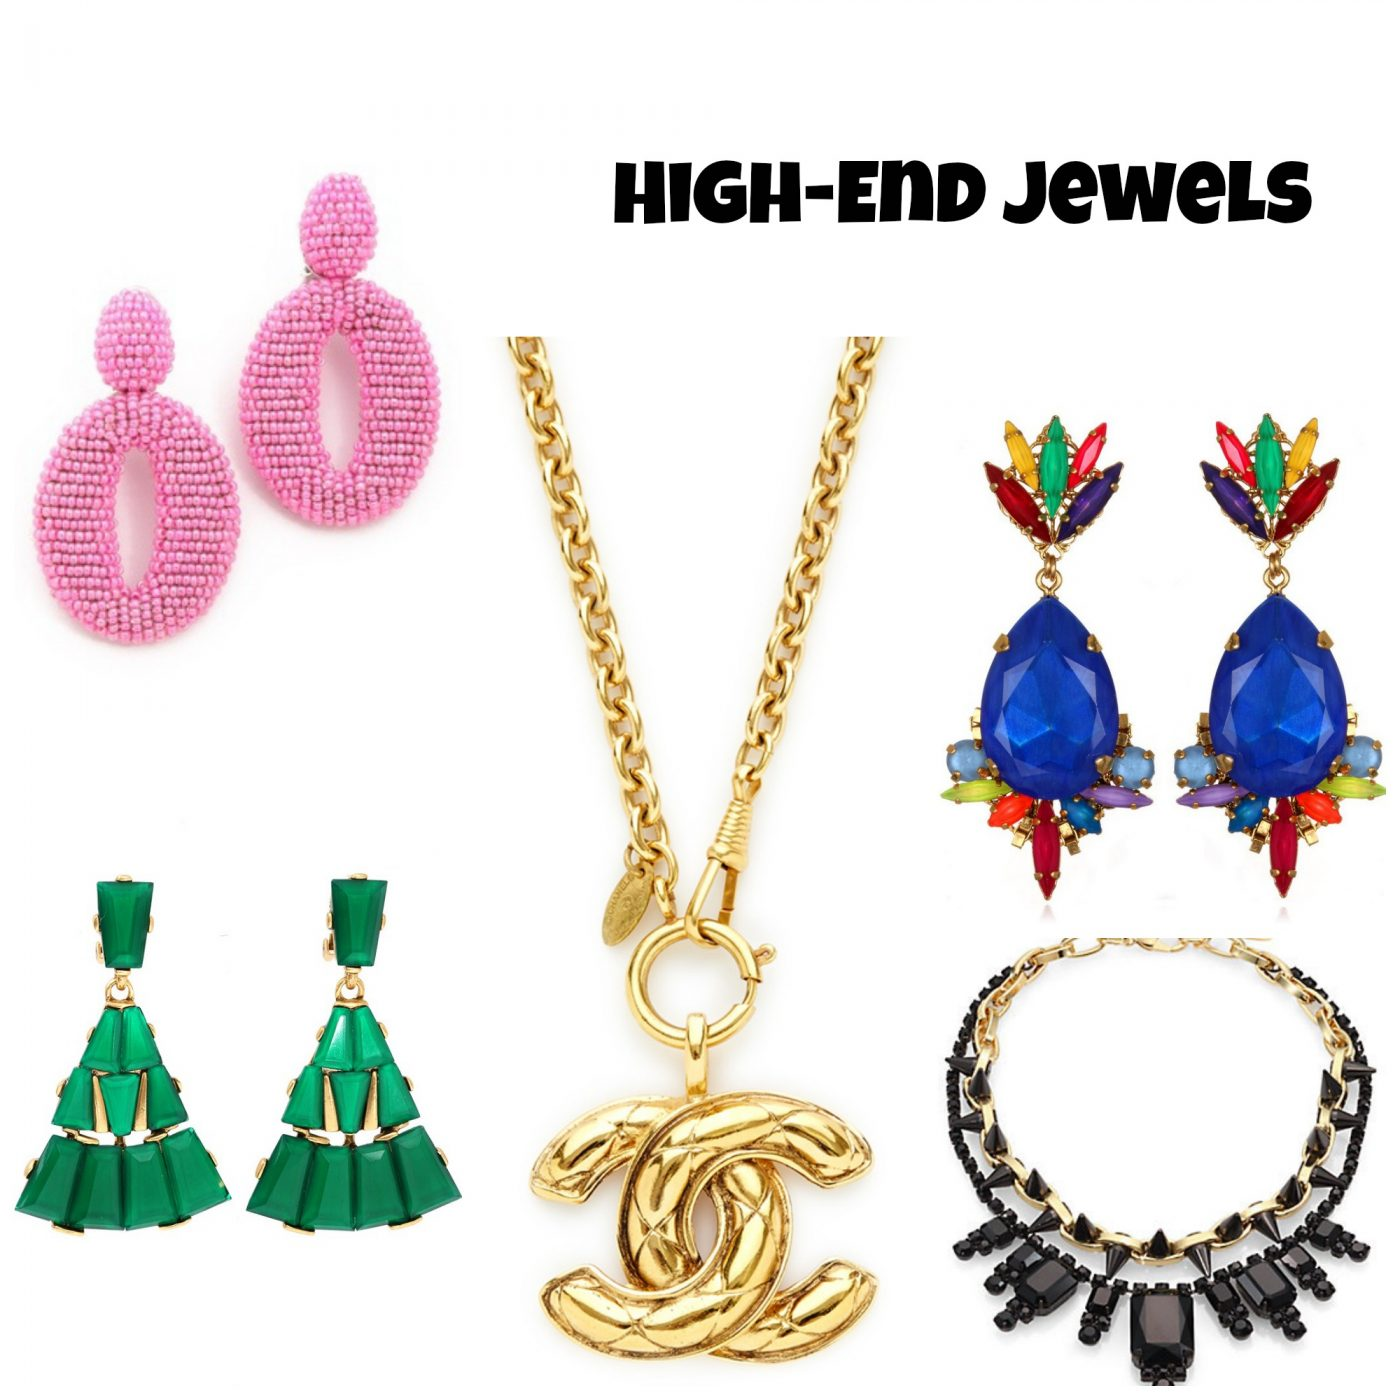 Bauble Wish List High End Jewels Baubles to Bubbles